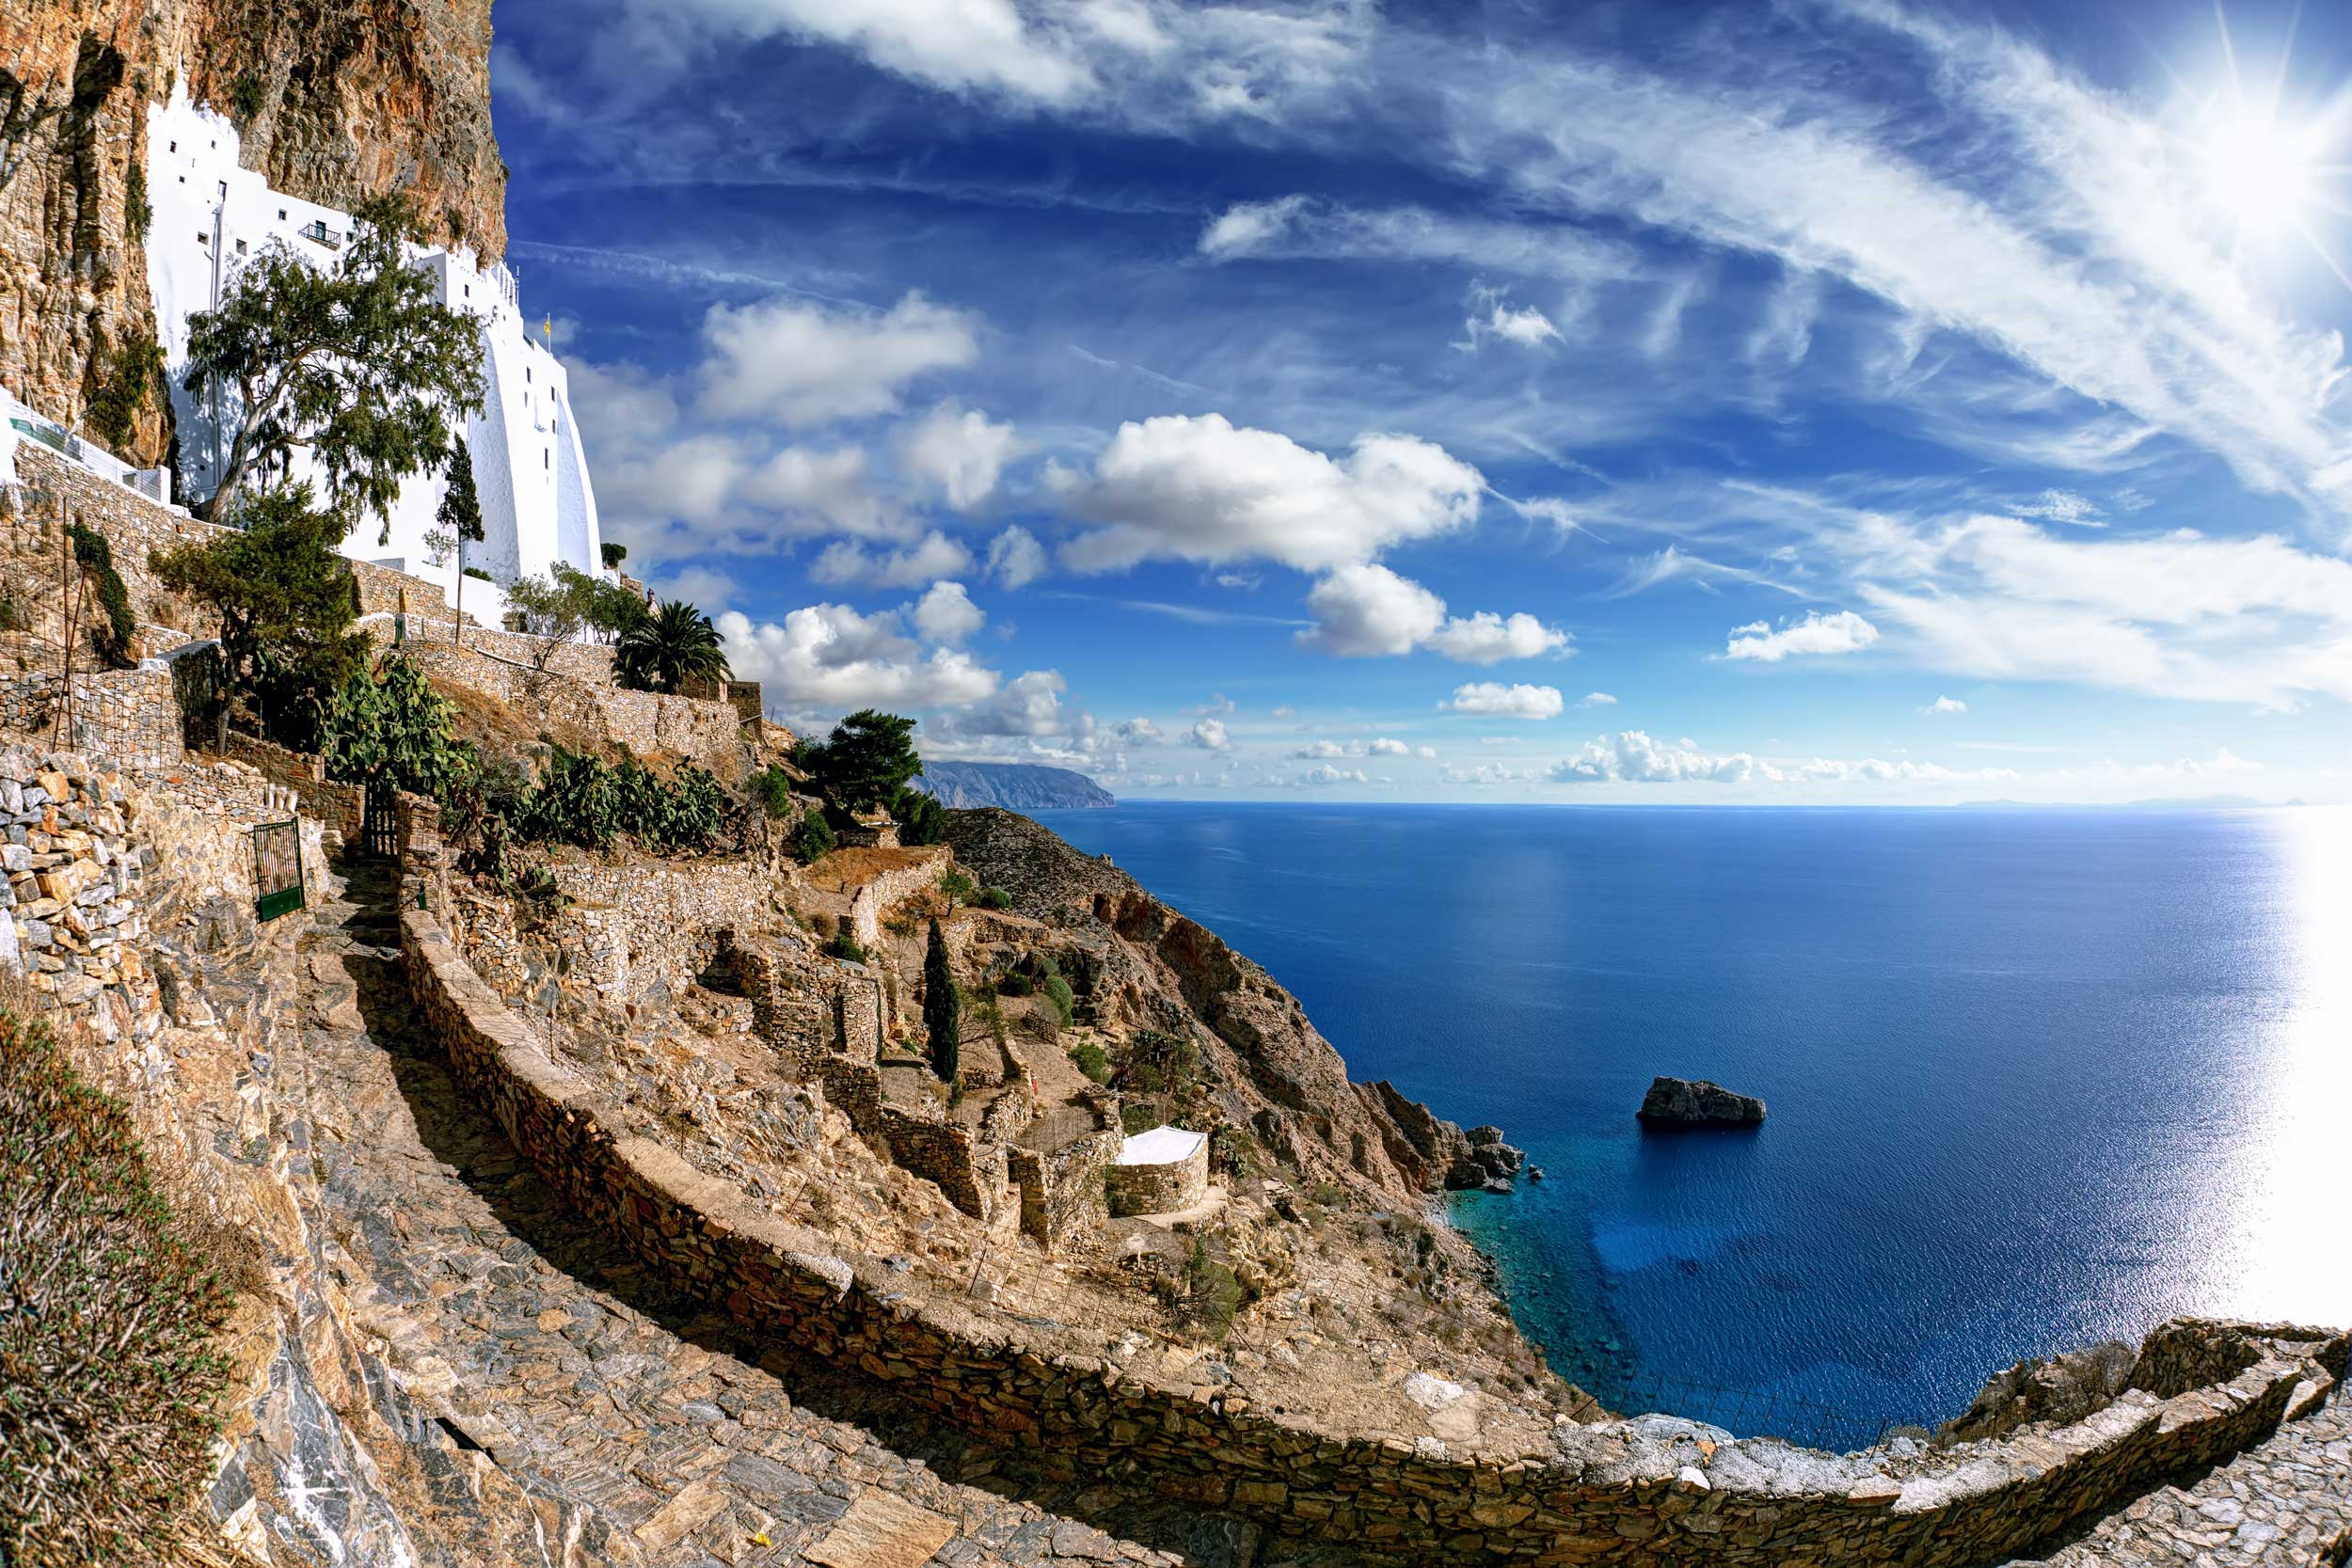 Pathway leading to a white monastery on a rocky cliffside overlooking a very blue sea and arcing clouds overhead, Greece